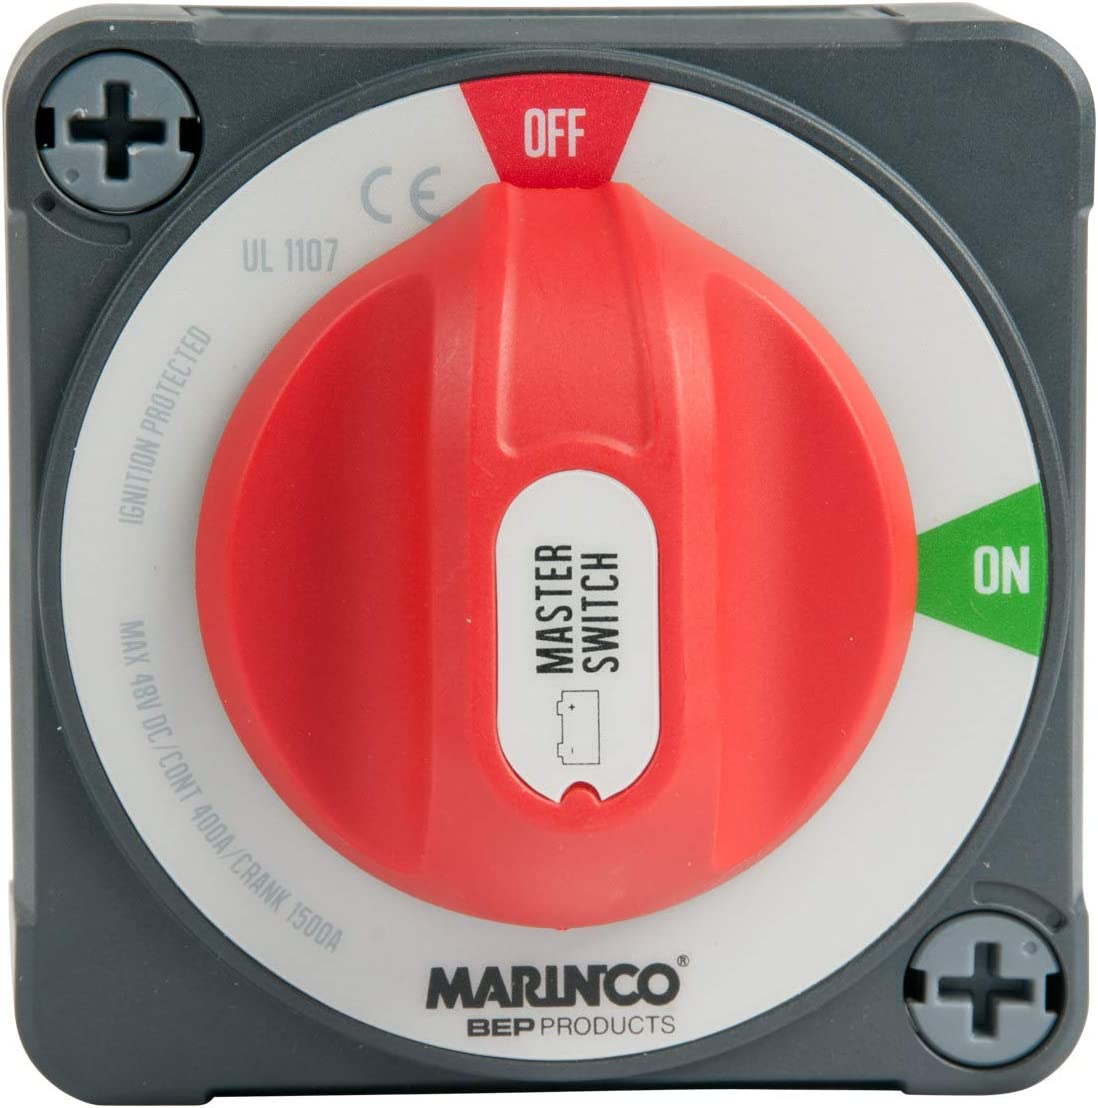 Marinco Power Limited price sale Products Pro Installer Off Max 44% OFF Swi On Battery EZ-Mount